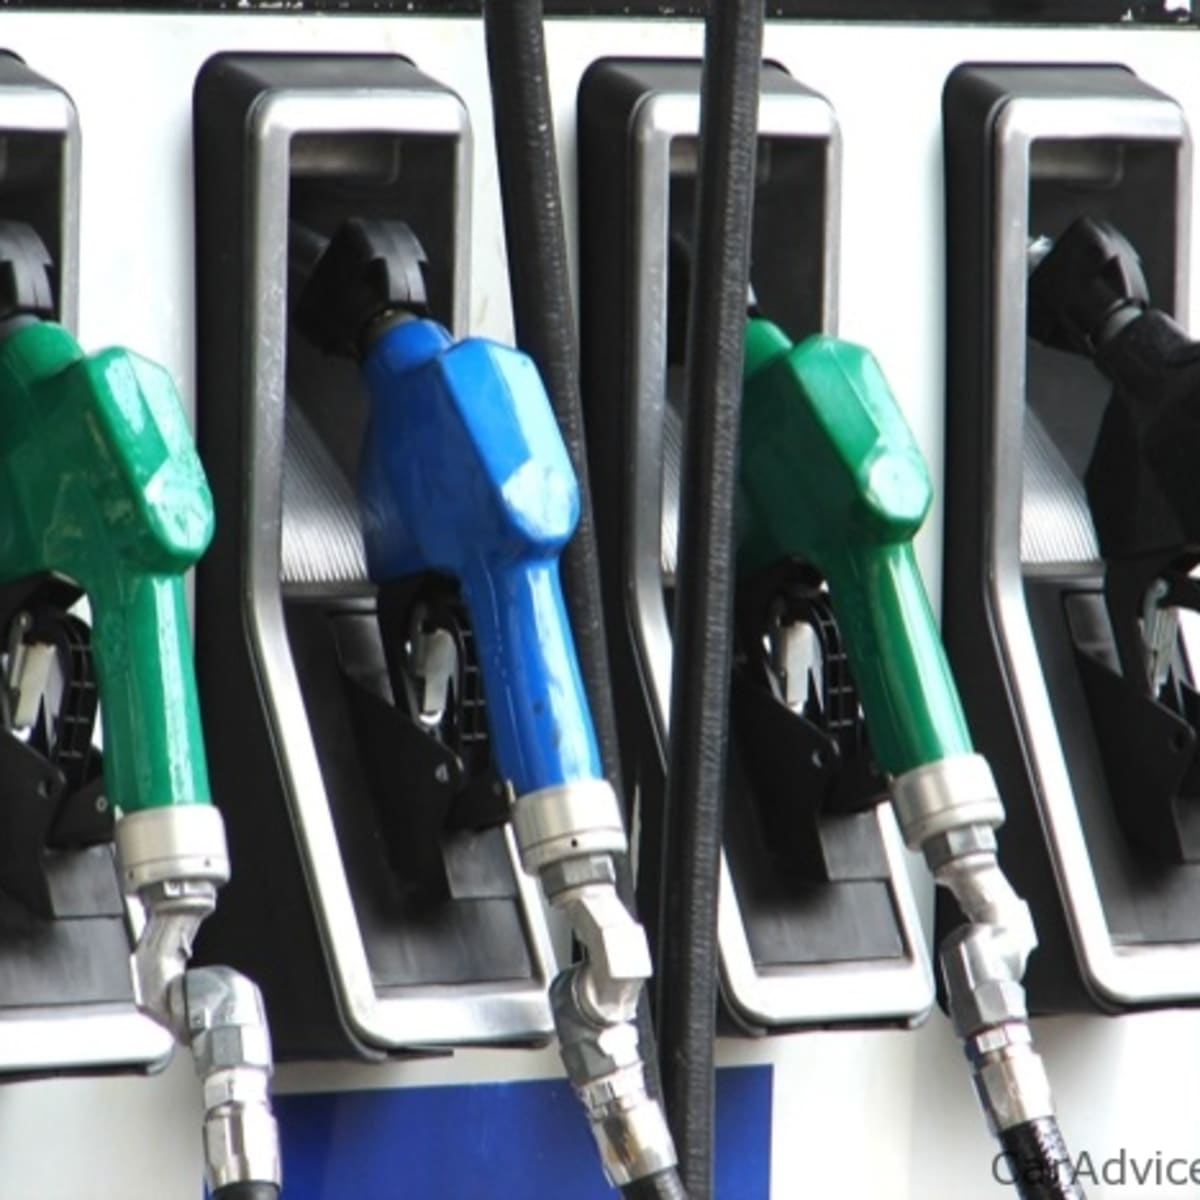 What Fuel Should I Use in My Car? | CarAdvice